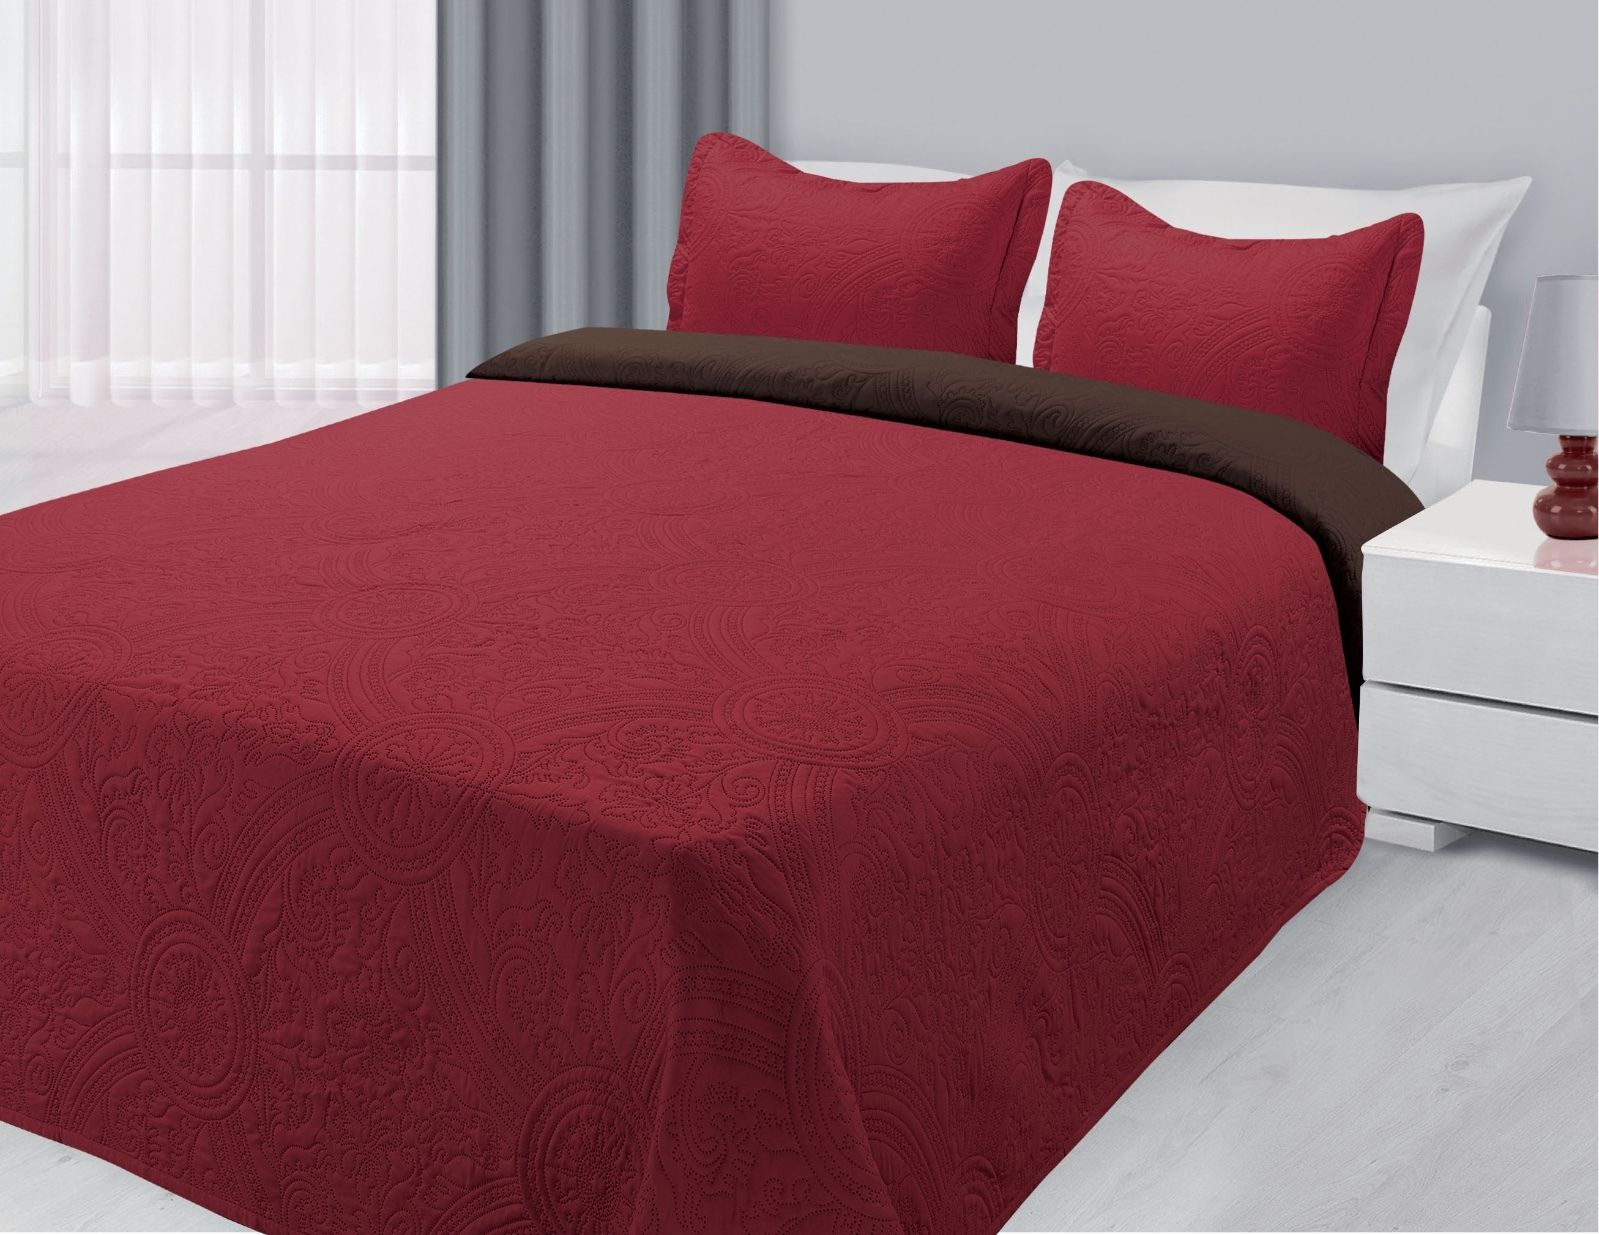 3-Piece Reversible Quilted Bedspread Coverlet Burgundy & Brown King Size by